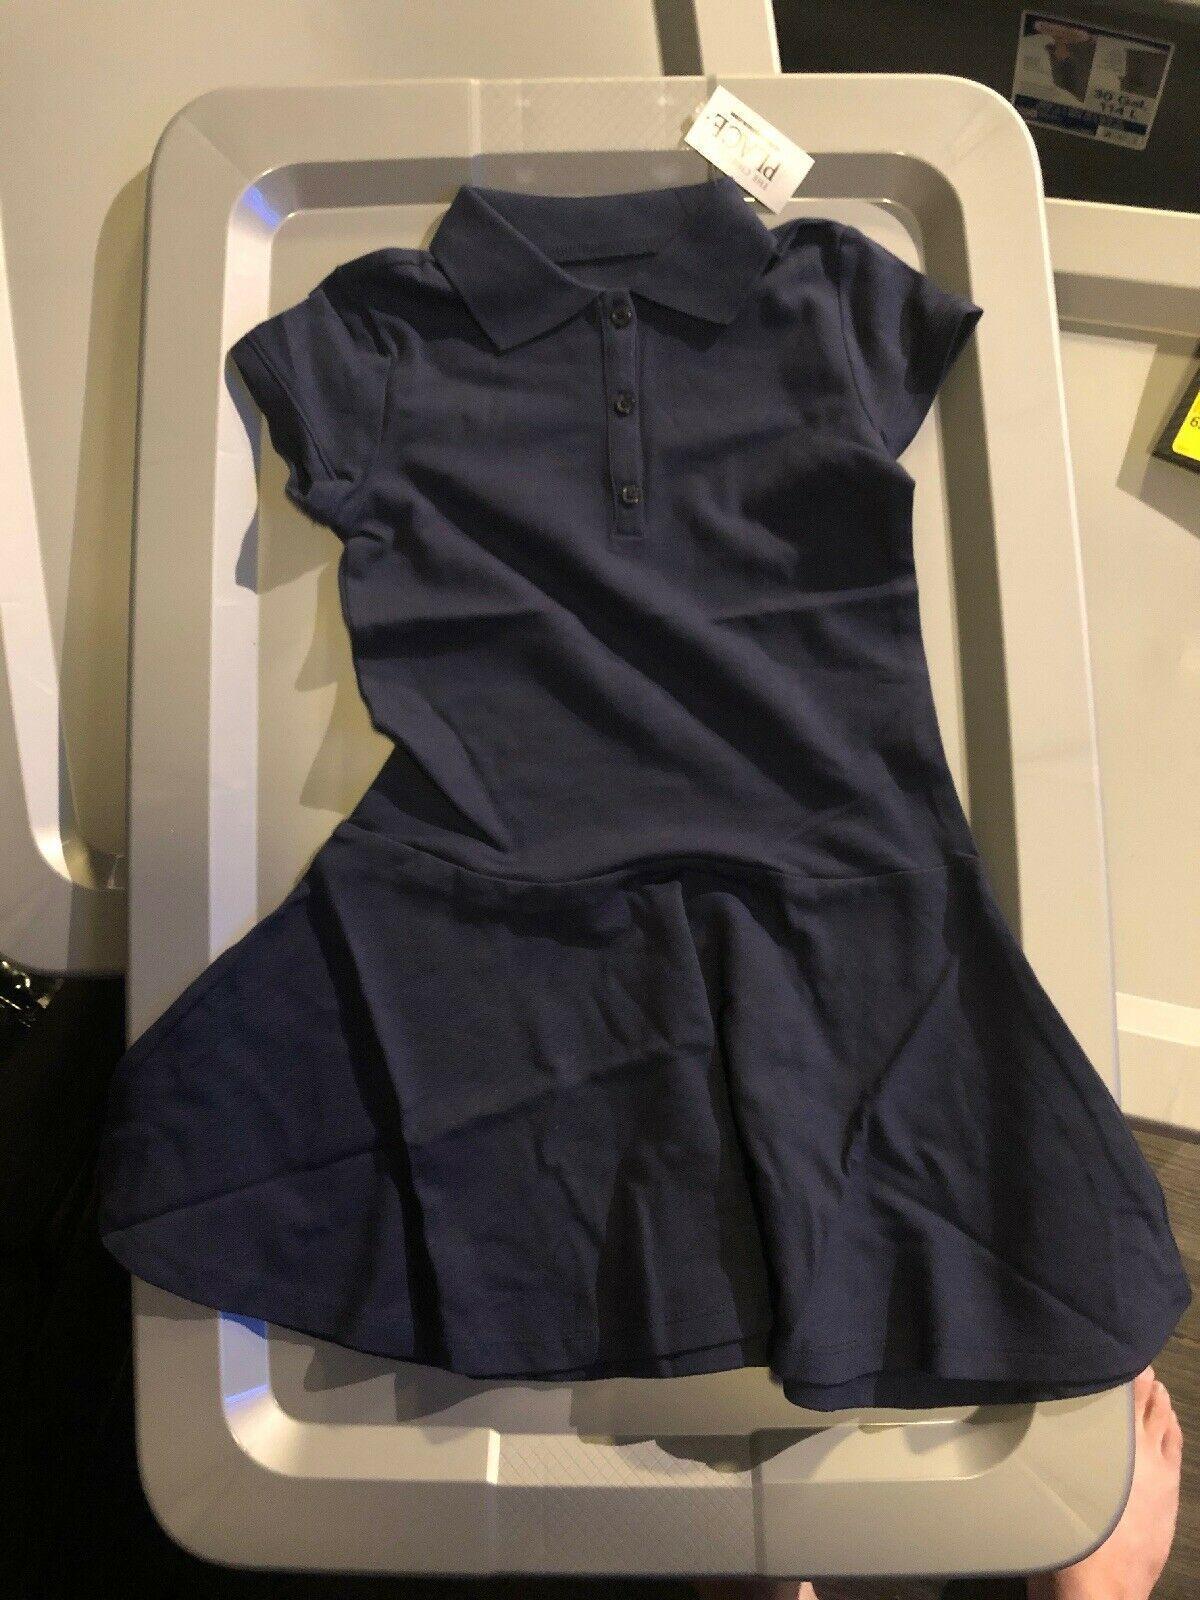 Primary image for The Childrens Place Girls Dress Solid Navy Short Sleeve Uniform Size Small 5/6